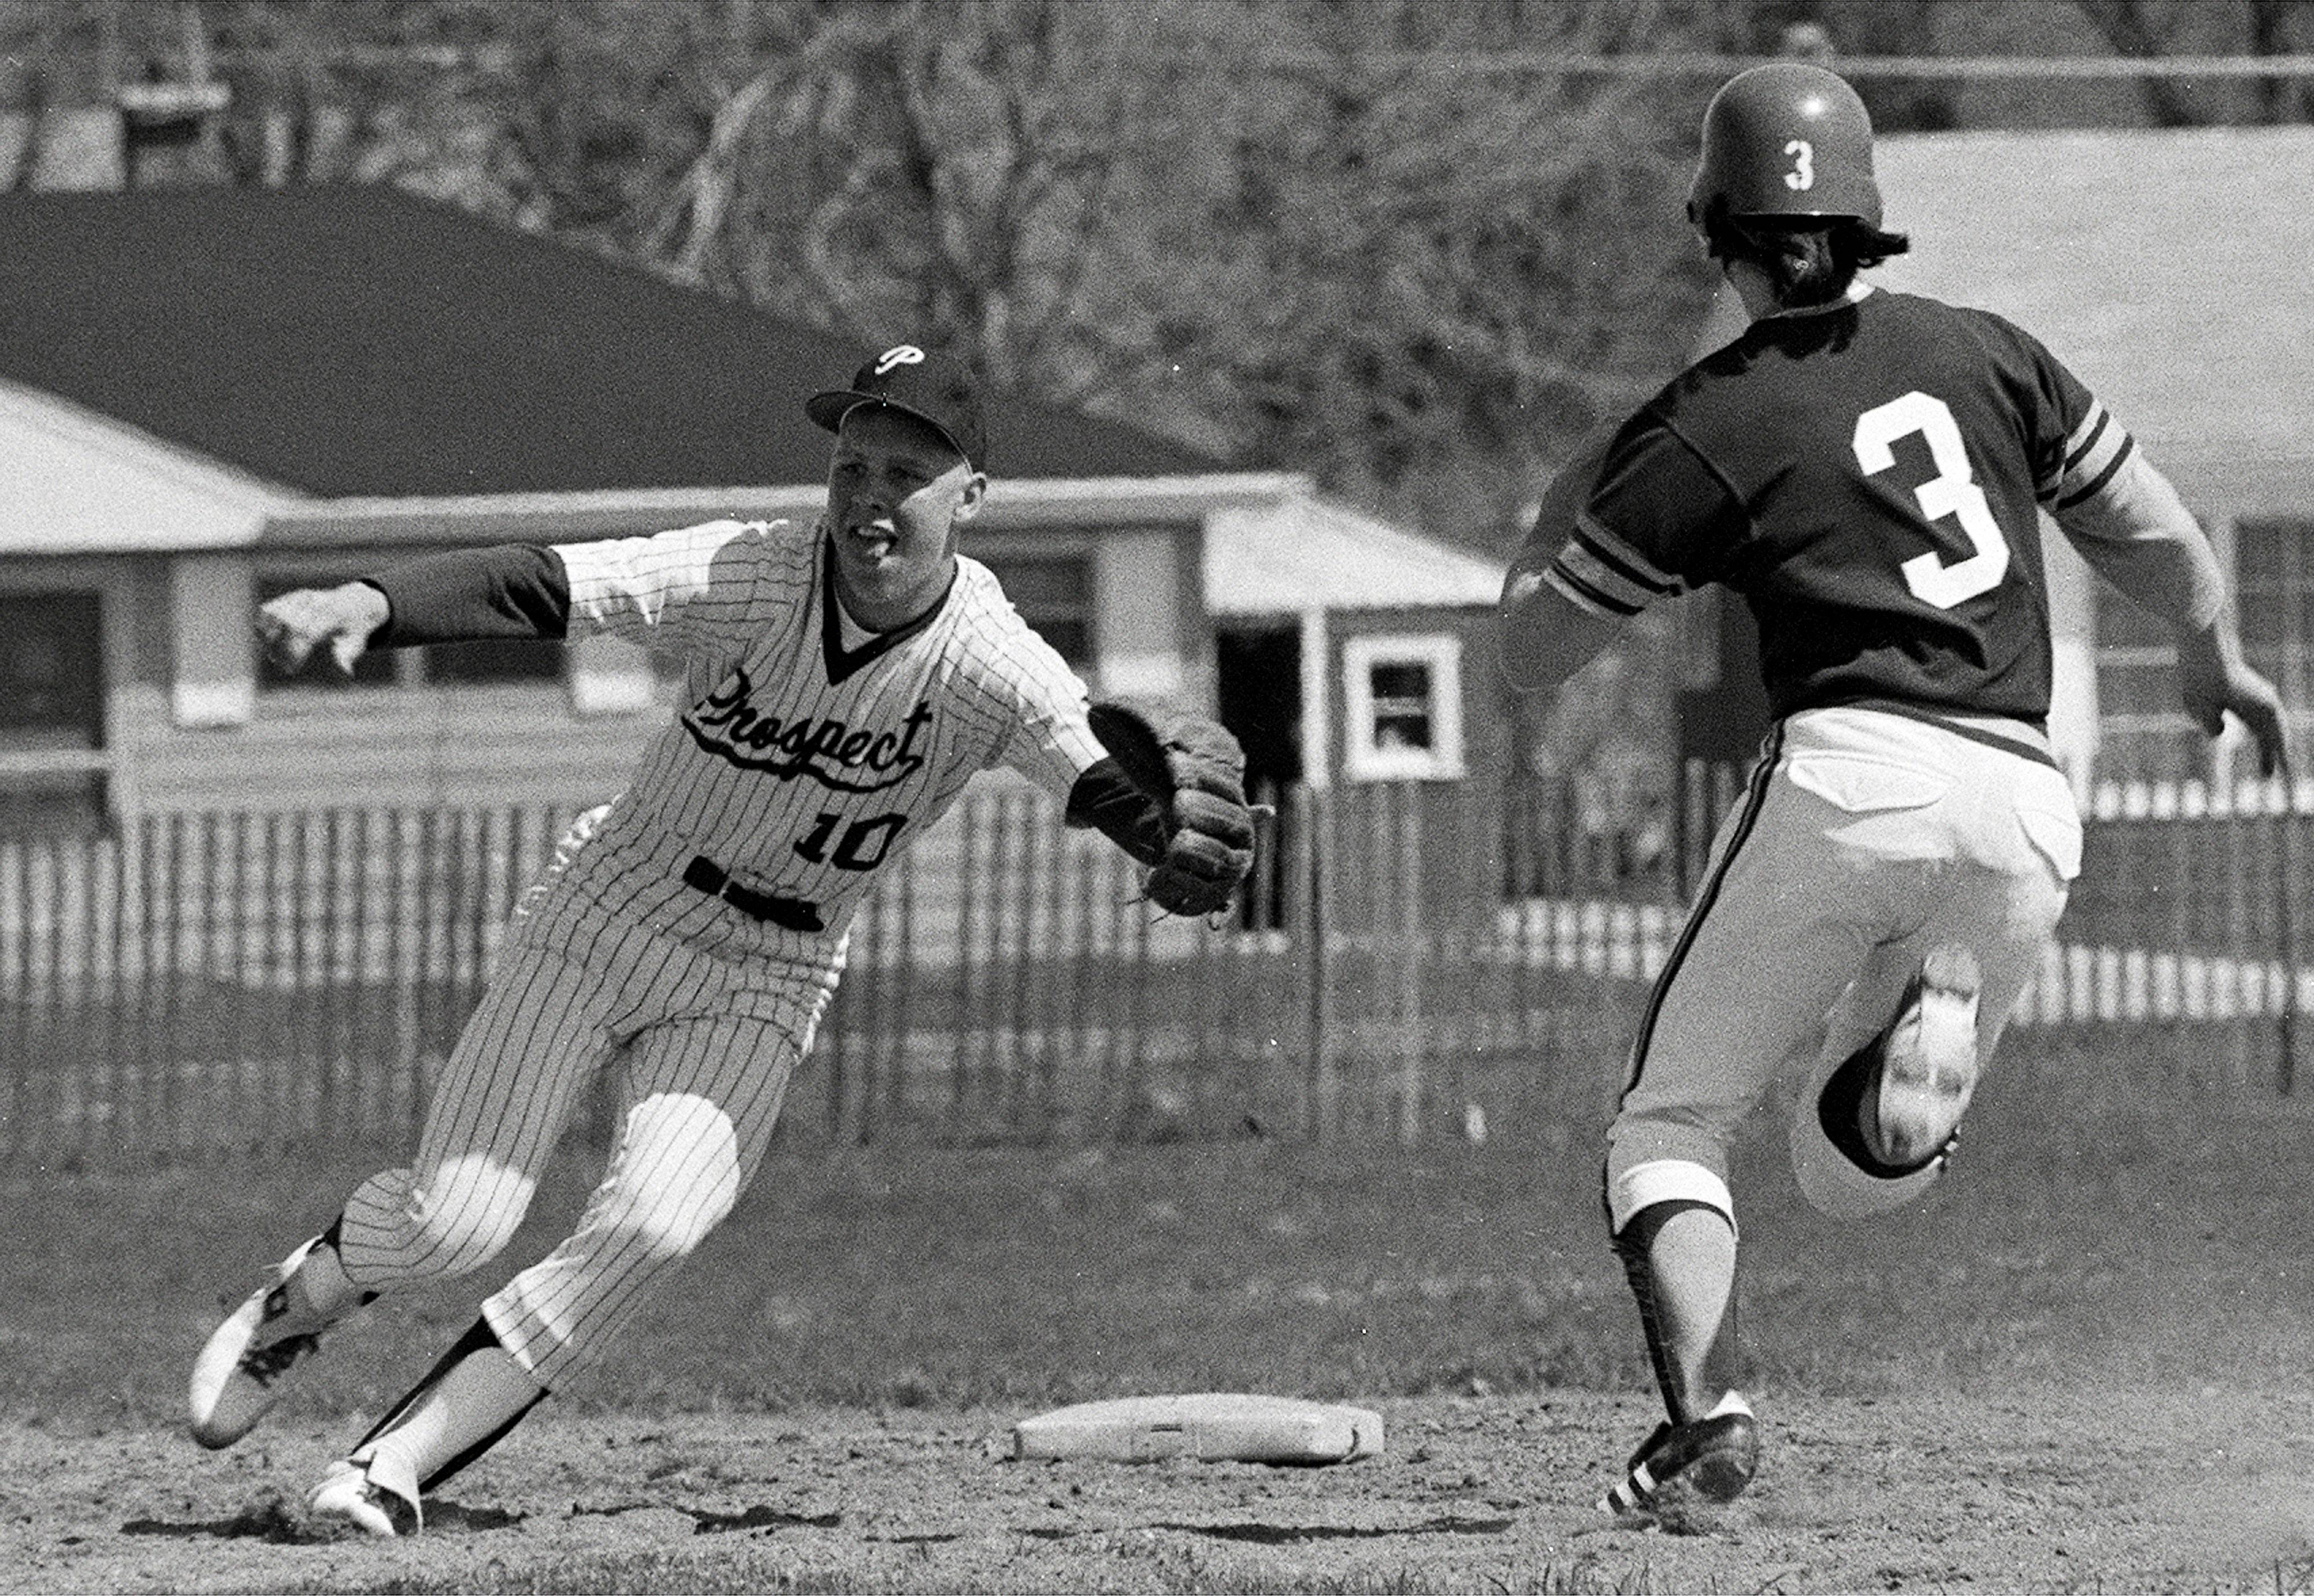 Mike Quade (left) played baseball for Mt. Prospect as shortstop back in 1974.